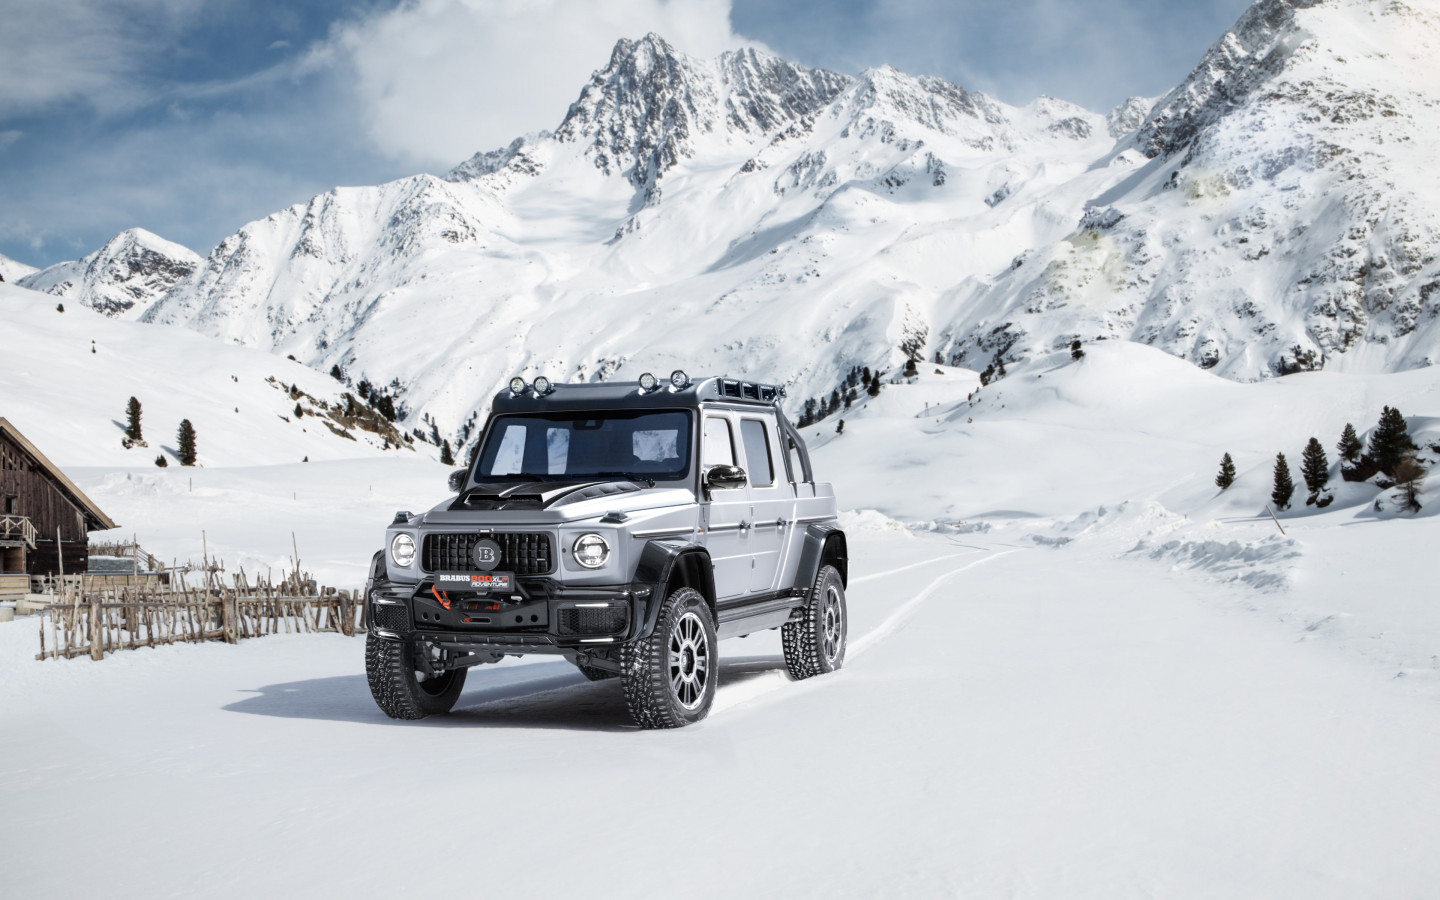 Mercedes Brabus 800 Adventure XLP wallpaper 1440x900